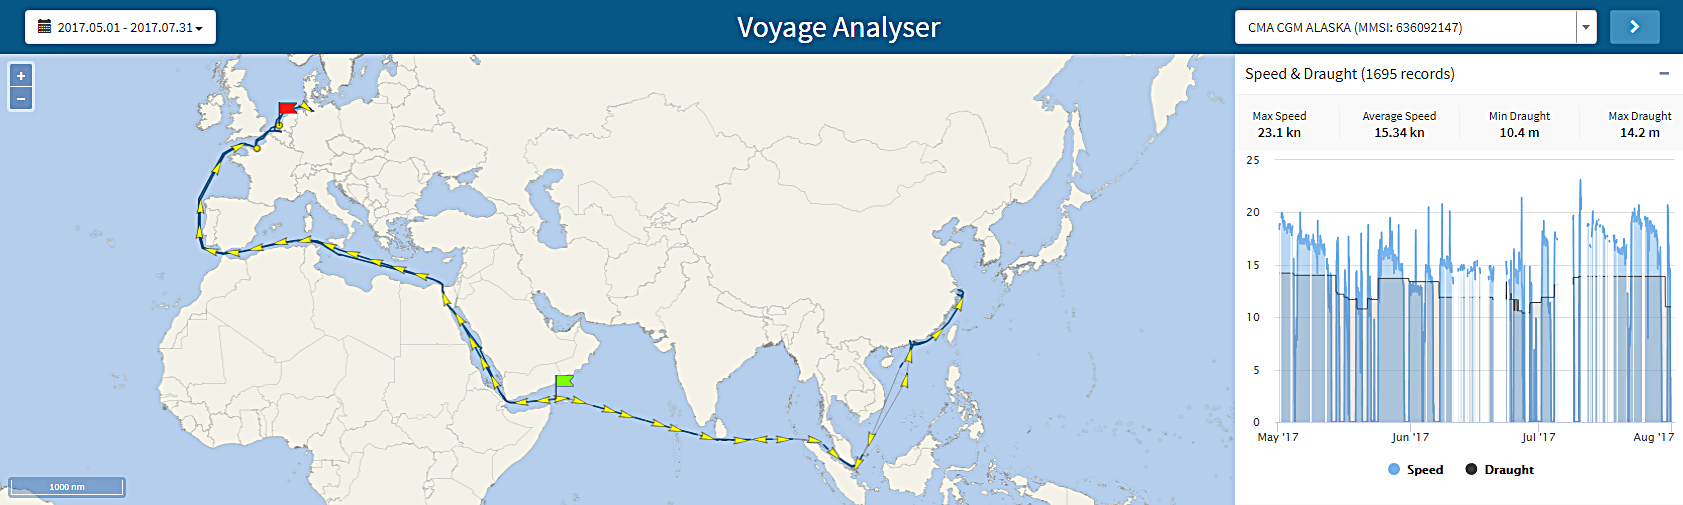 Voyage Analyser - Track the historical ship movements